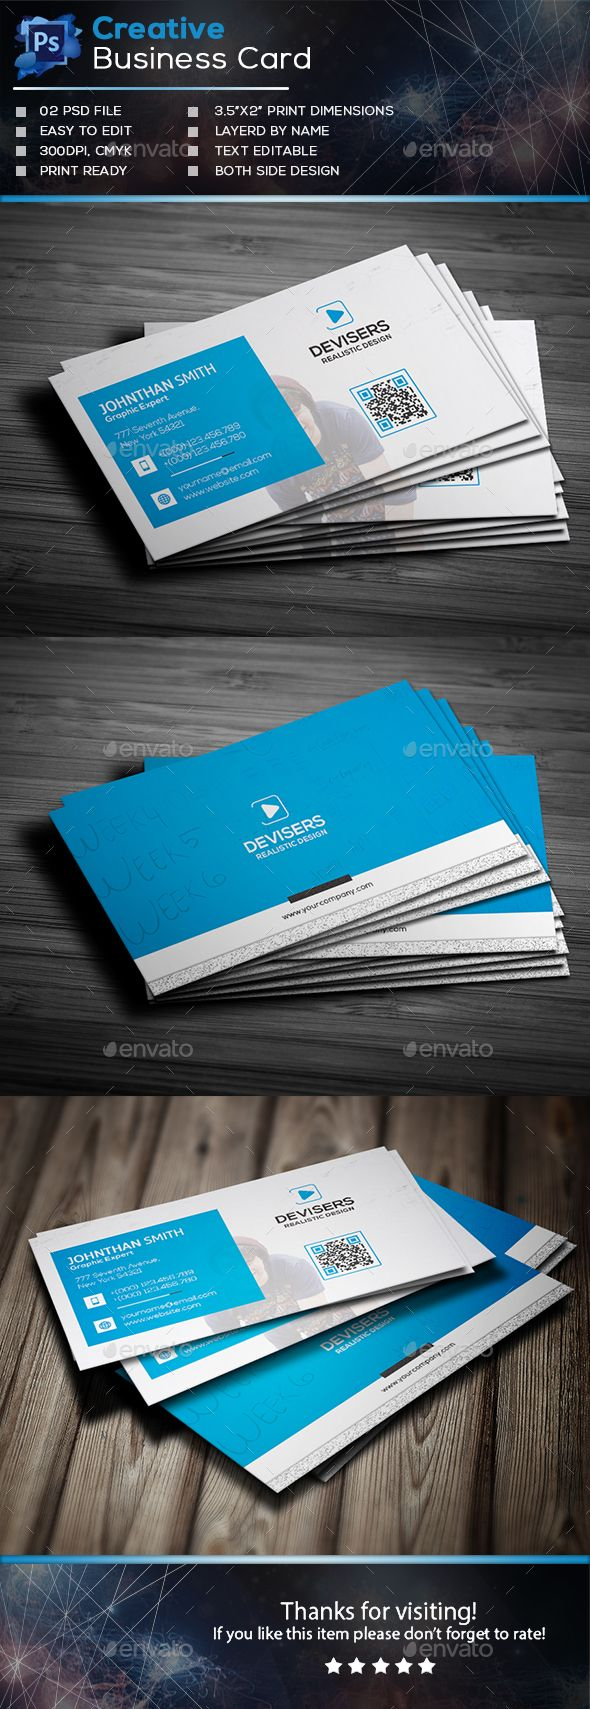 Creative business card template psd download here http creative business card template psd download here httpgraphicriver wajeb Gallery